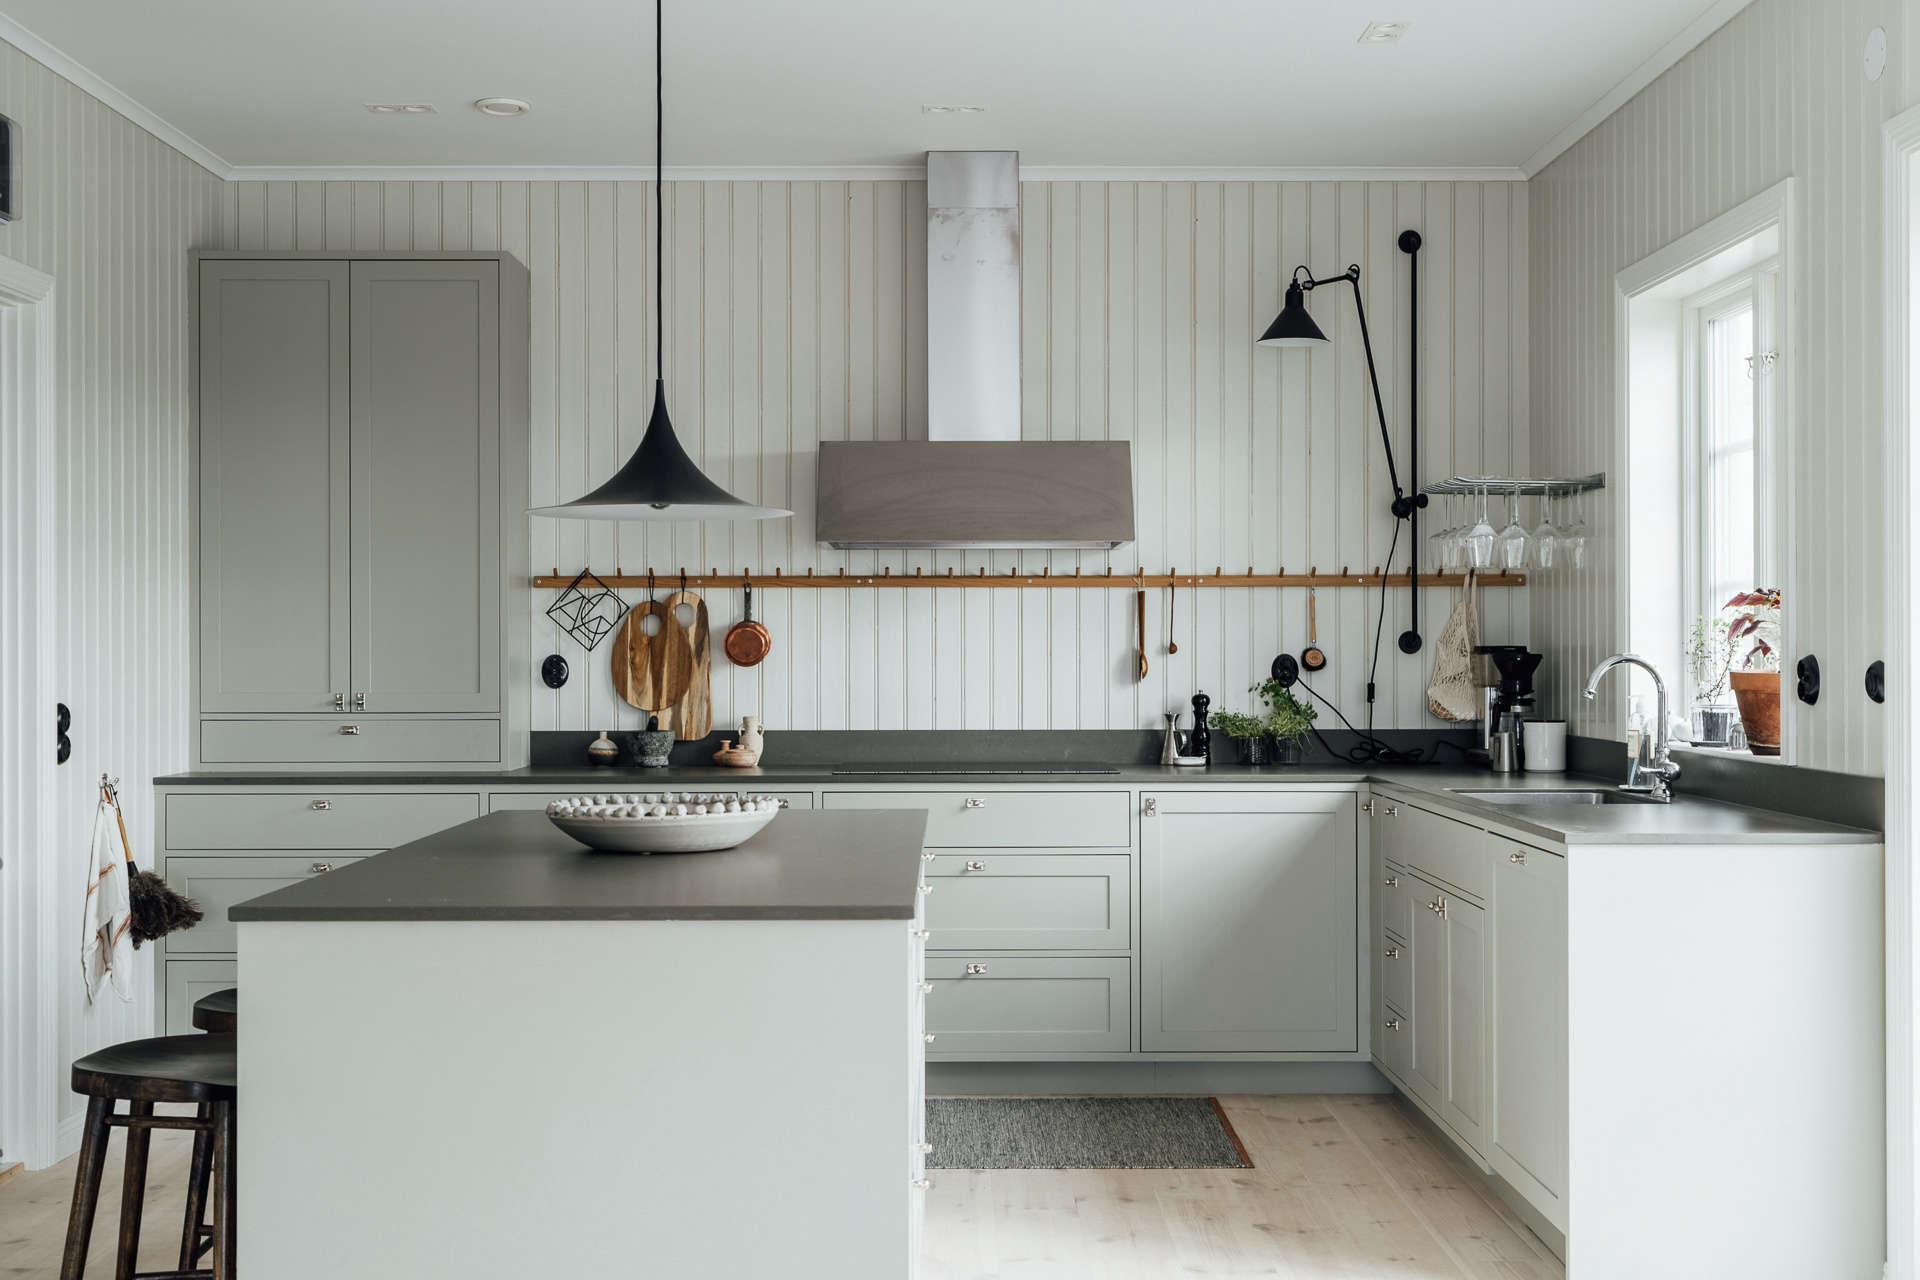 title | The Minimalist Kitchen